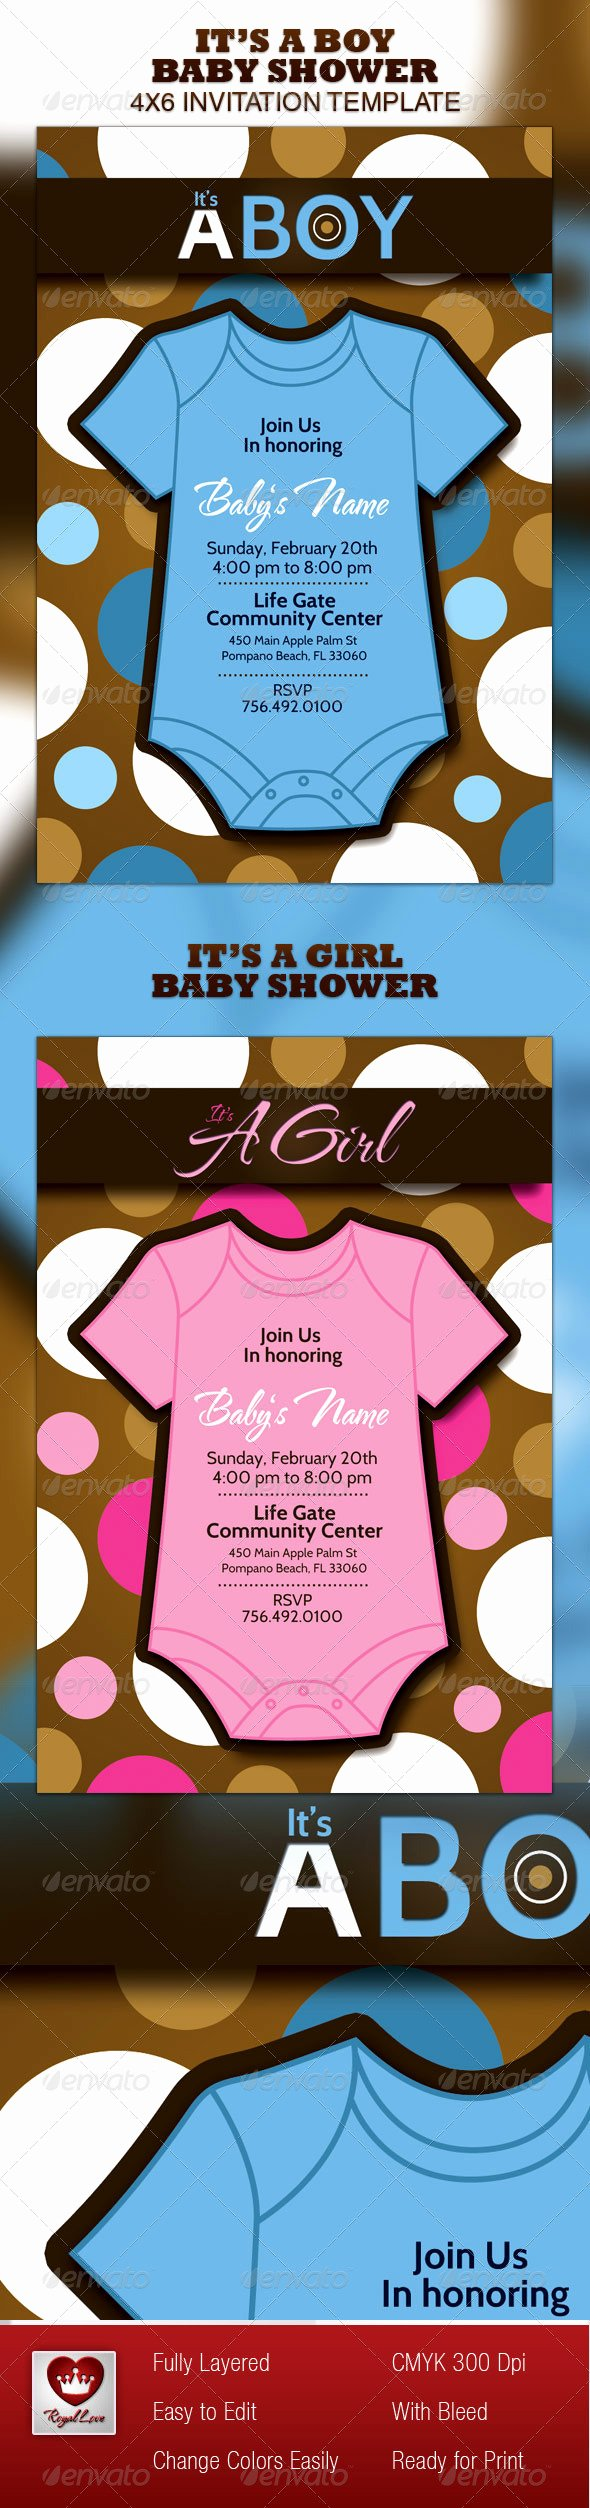 Baby Shower Menu Template Beautiful Boy & Girl Baby Shower Invitation Template by Royallove